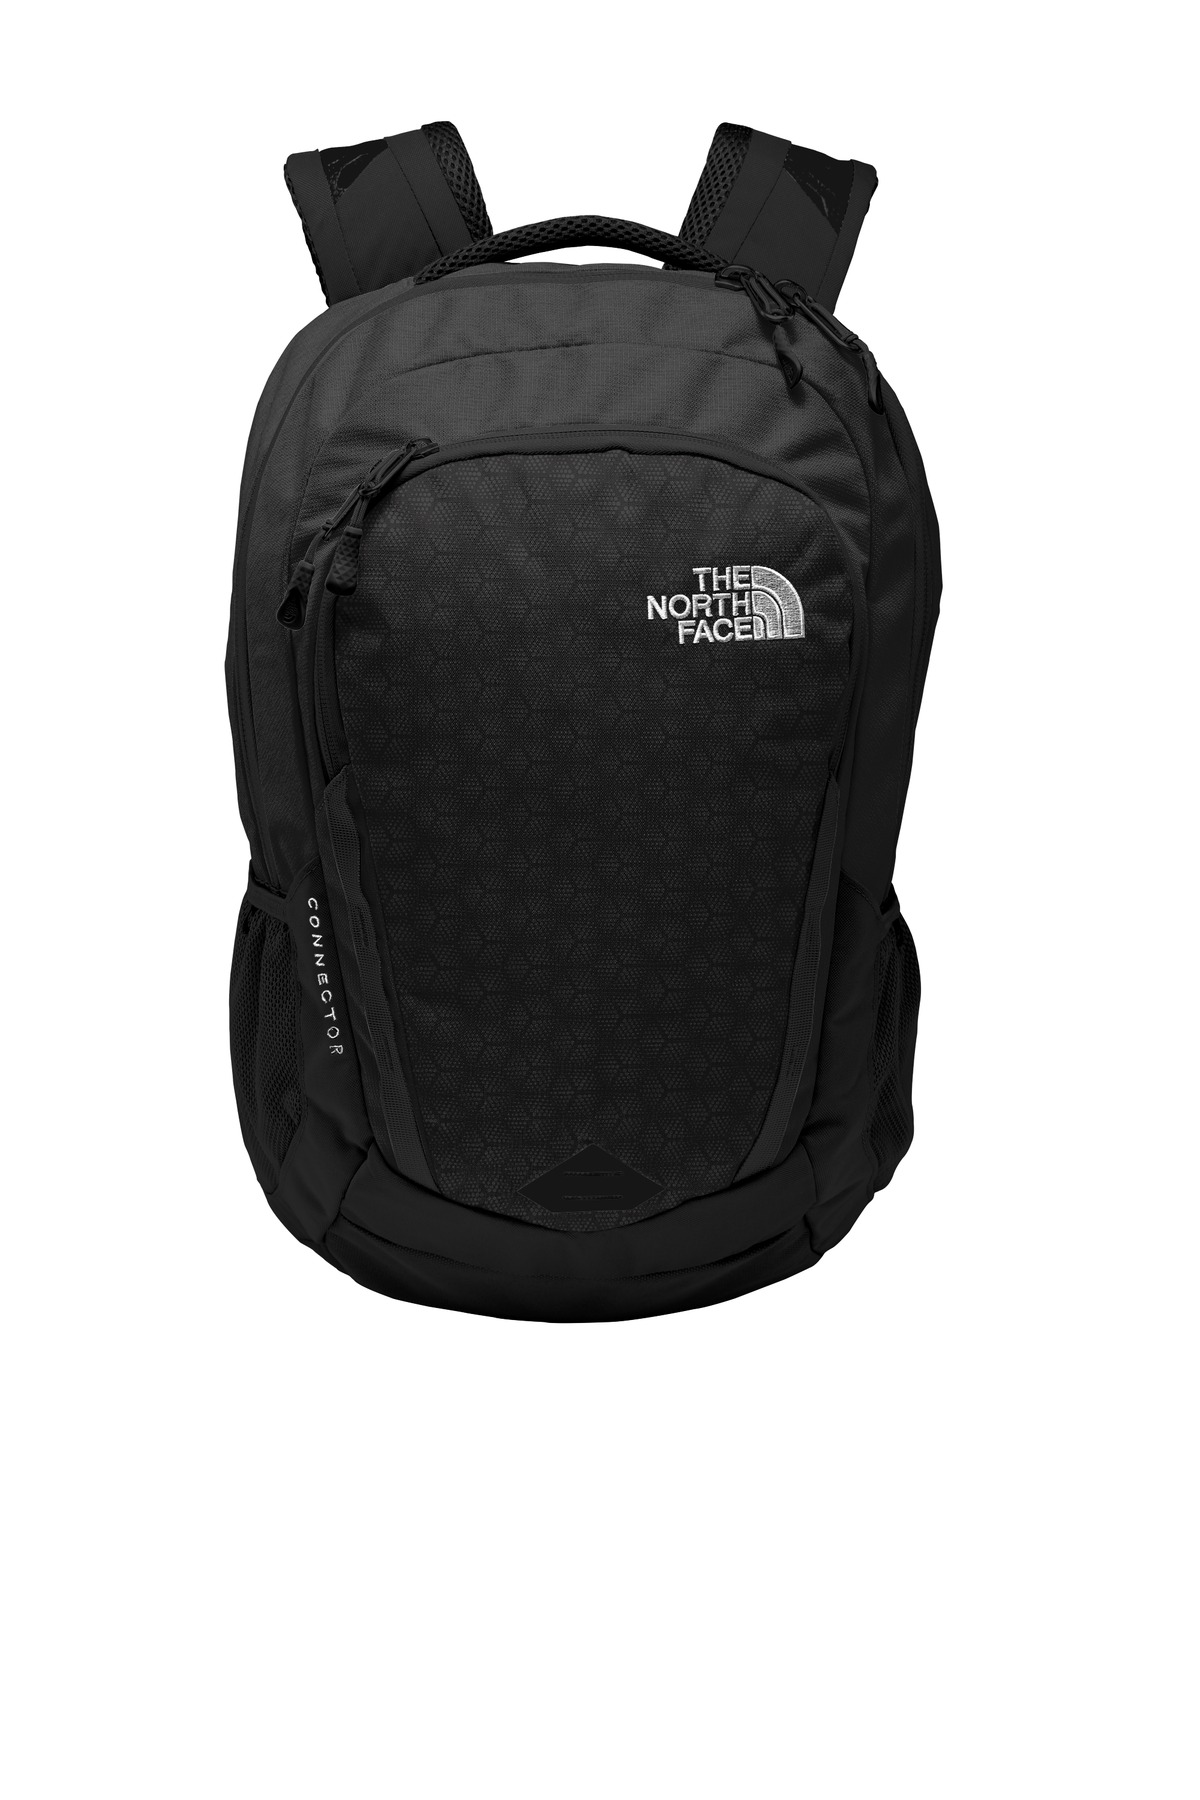 The North Face  ®  Connector Backpack. NF0A3KX8 - TNF Black/ TNF White